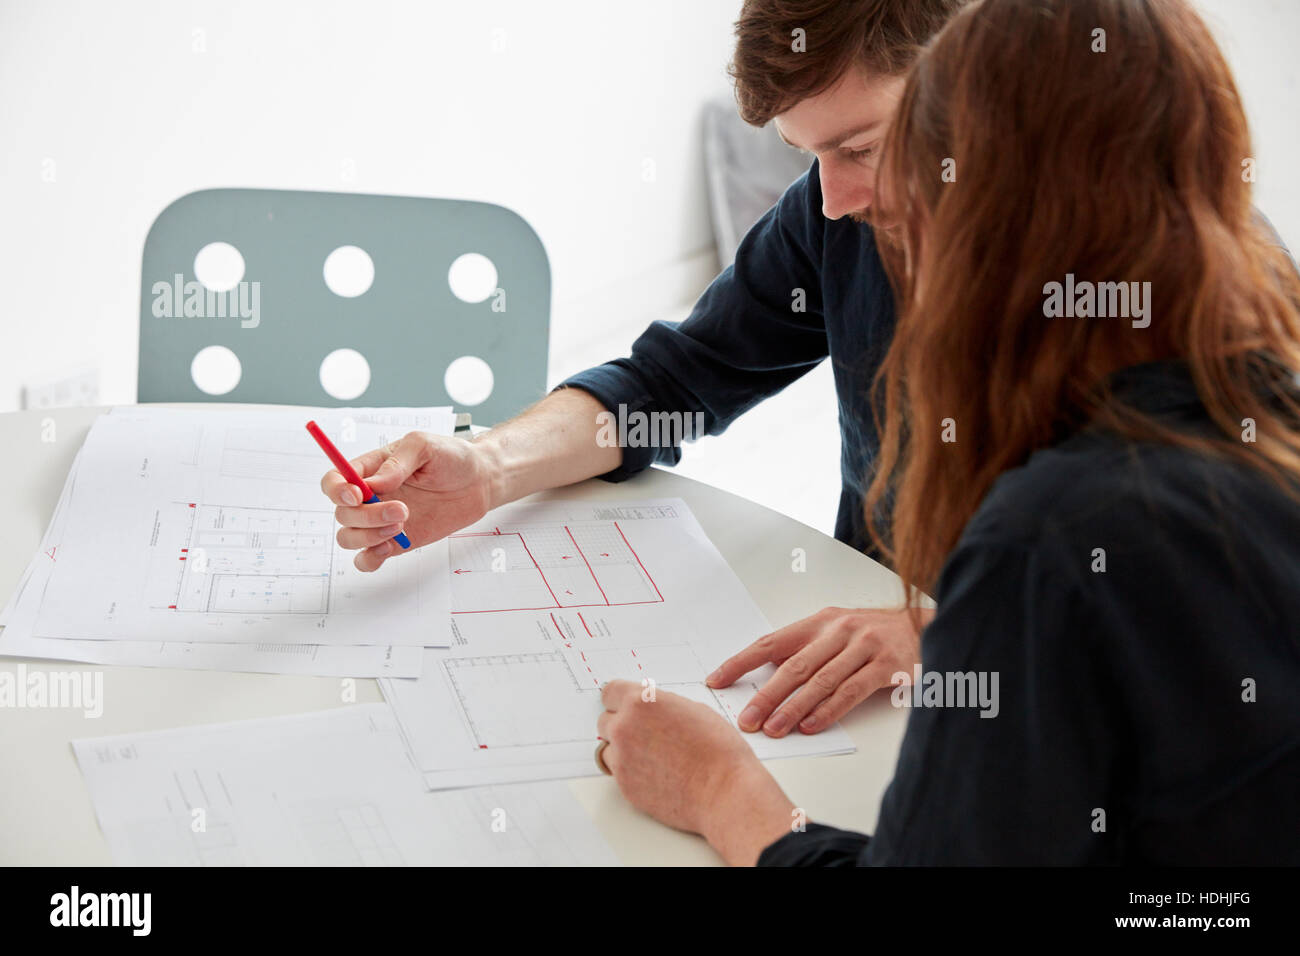 A modern office. Two people at a meeting discussing plans and drawings, Architectural drawings. - Stock Image